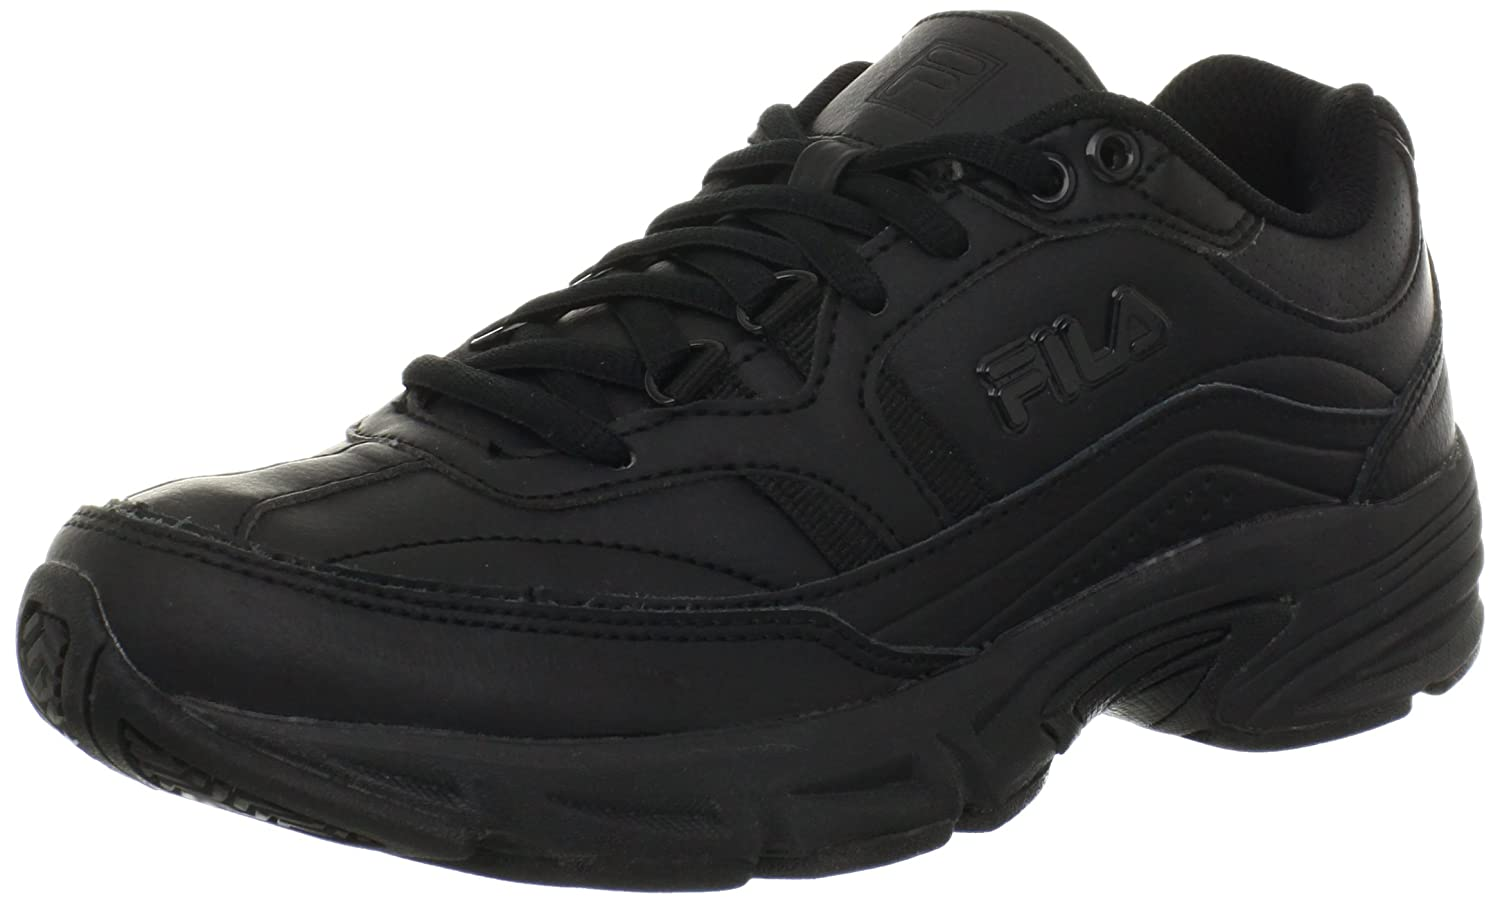 Fila Memory Workshift Damen US 9.5 Schwarz Wanderschuh